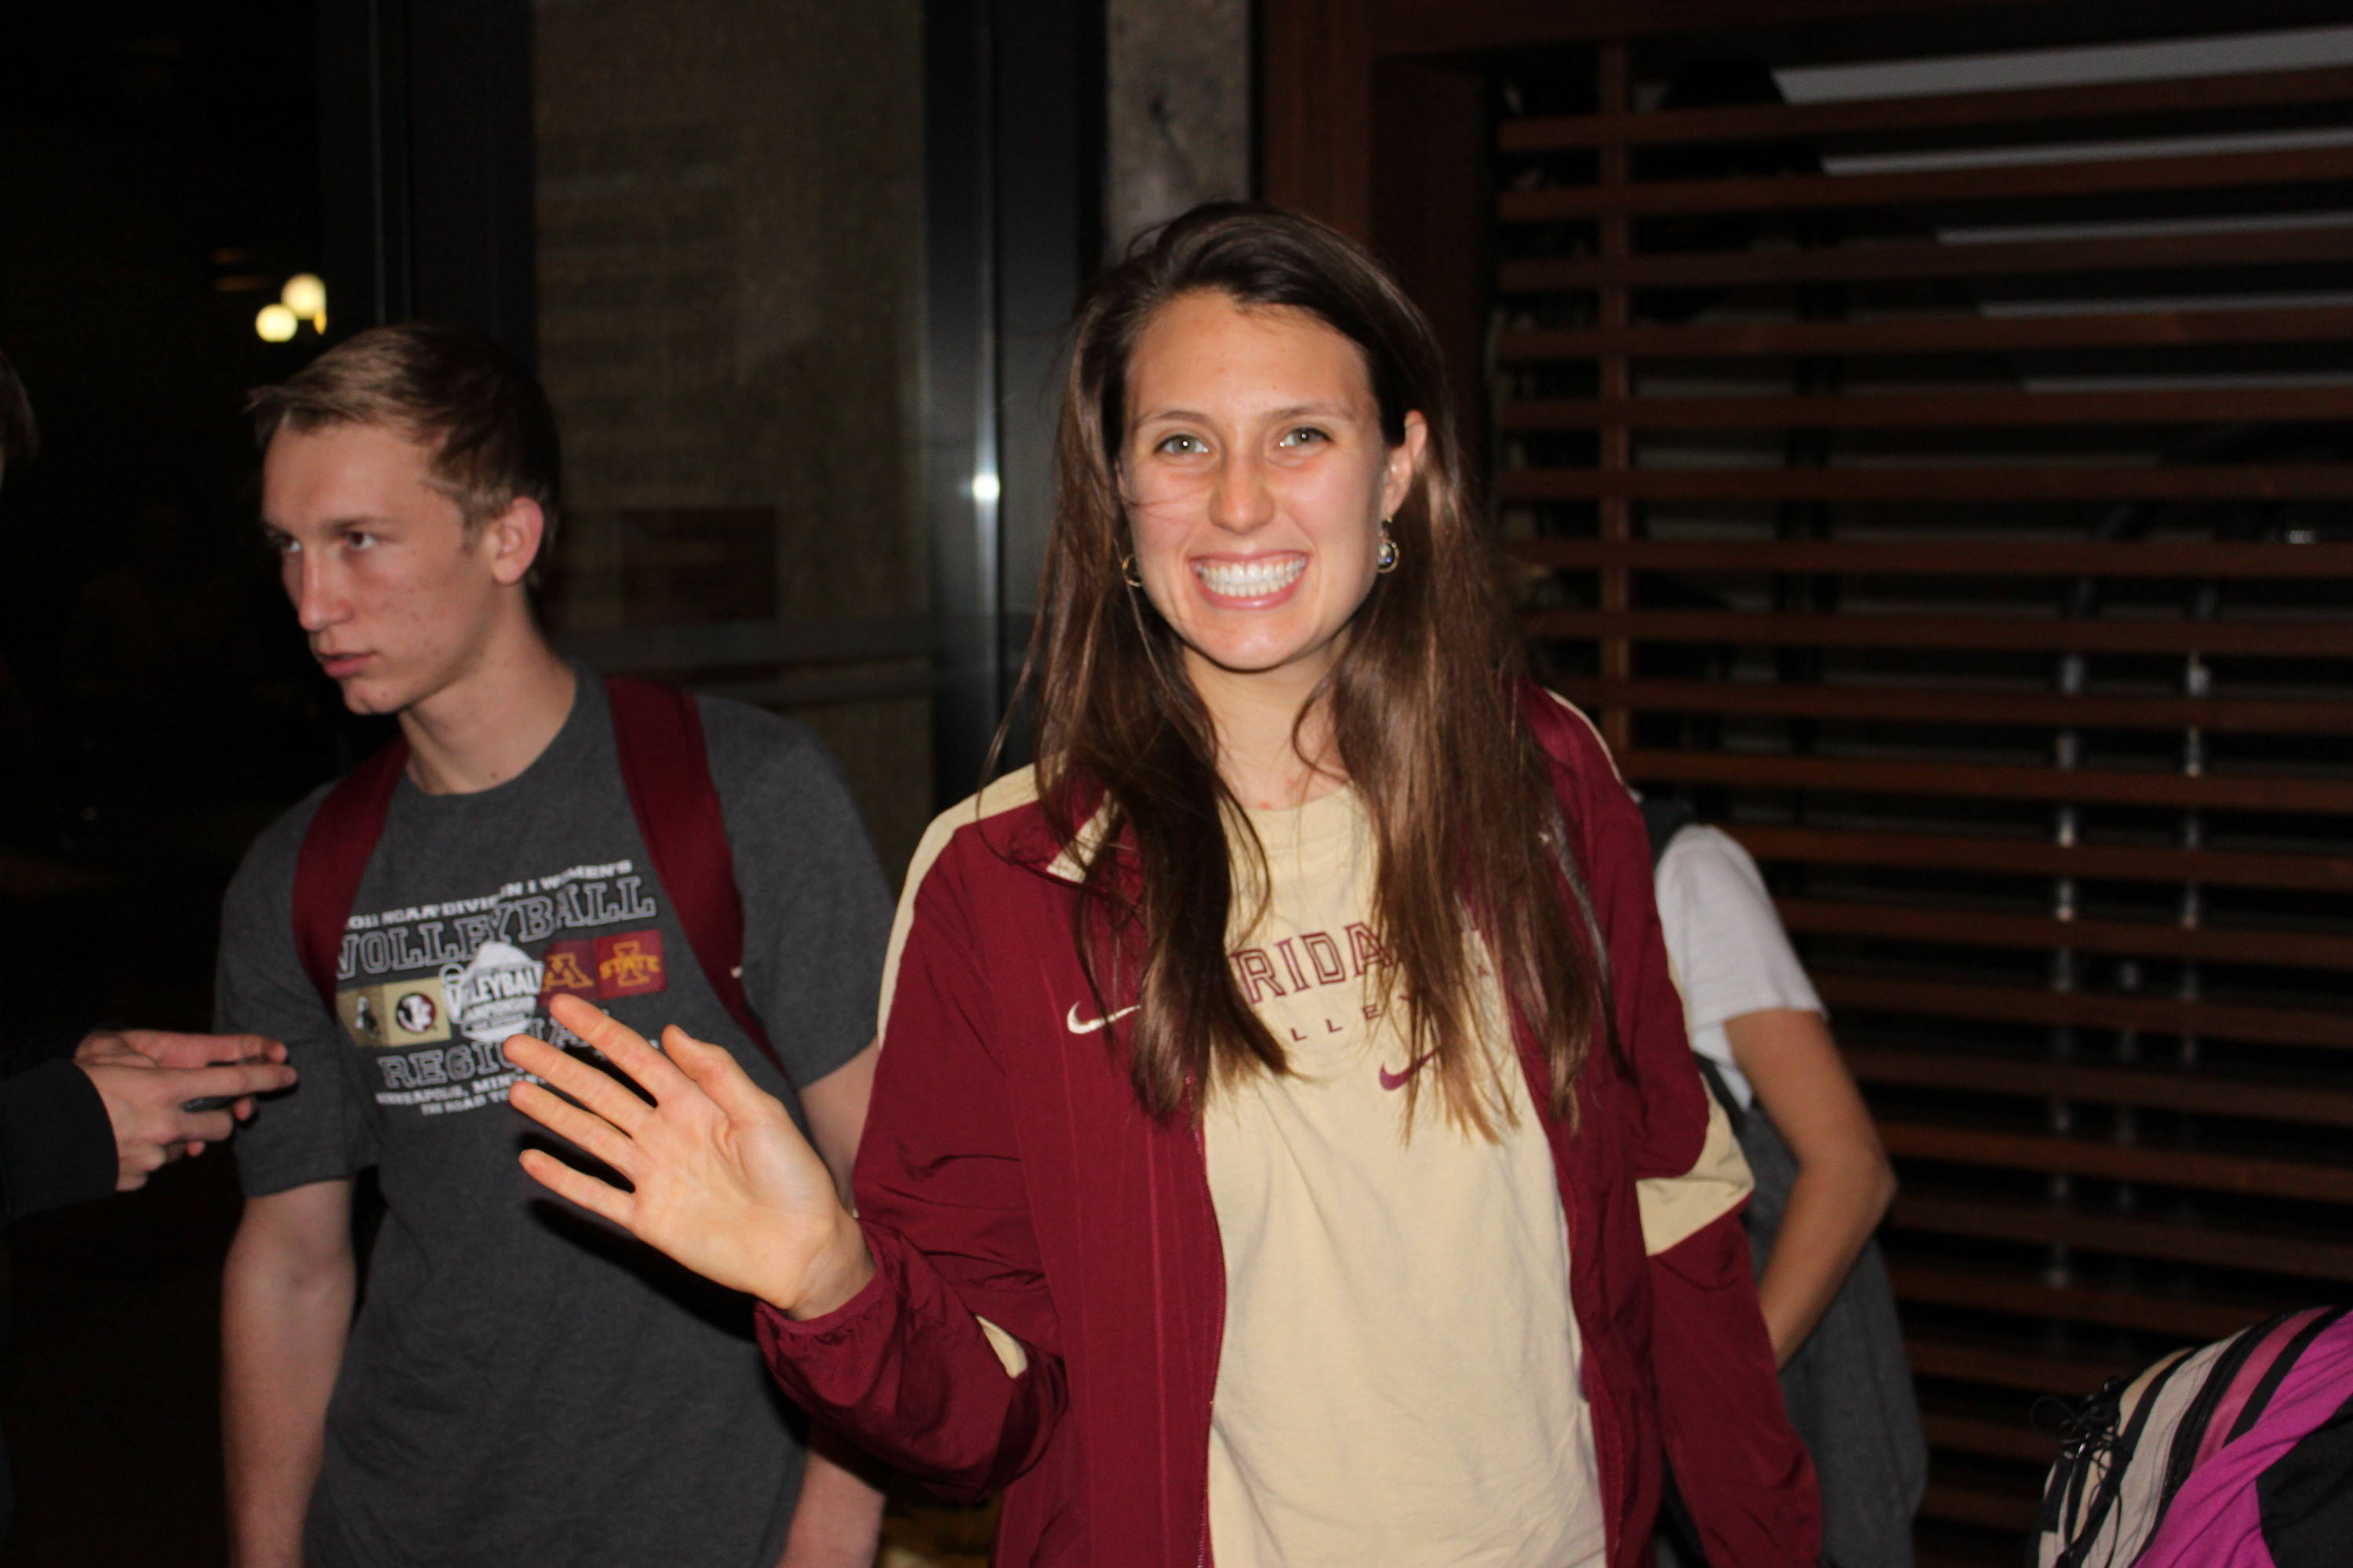 Amanda Saxton (15) smiles for the camera as she arrives at the team hotel